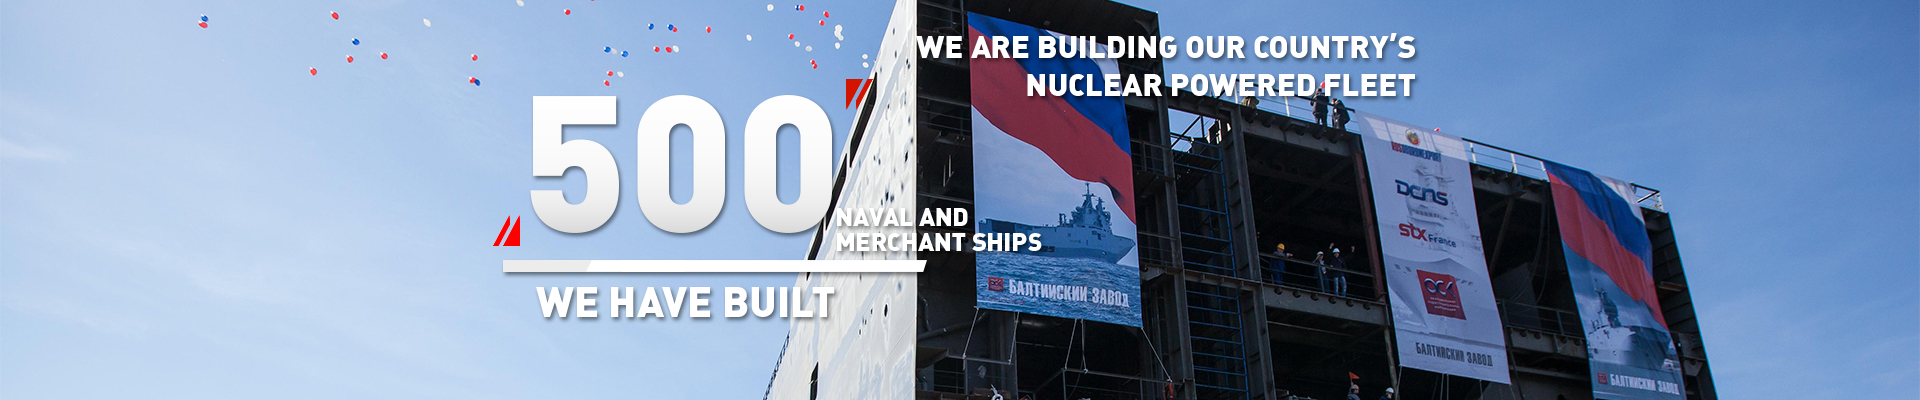 500 naval and merchant ships we have built